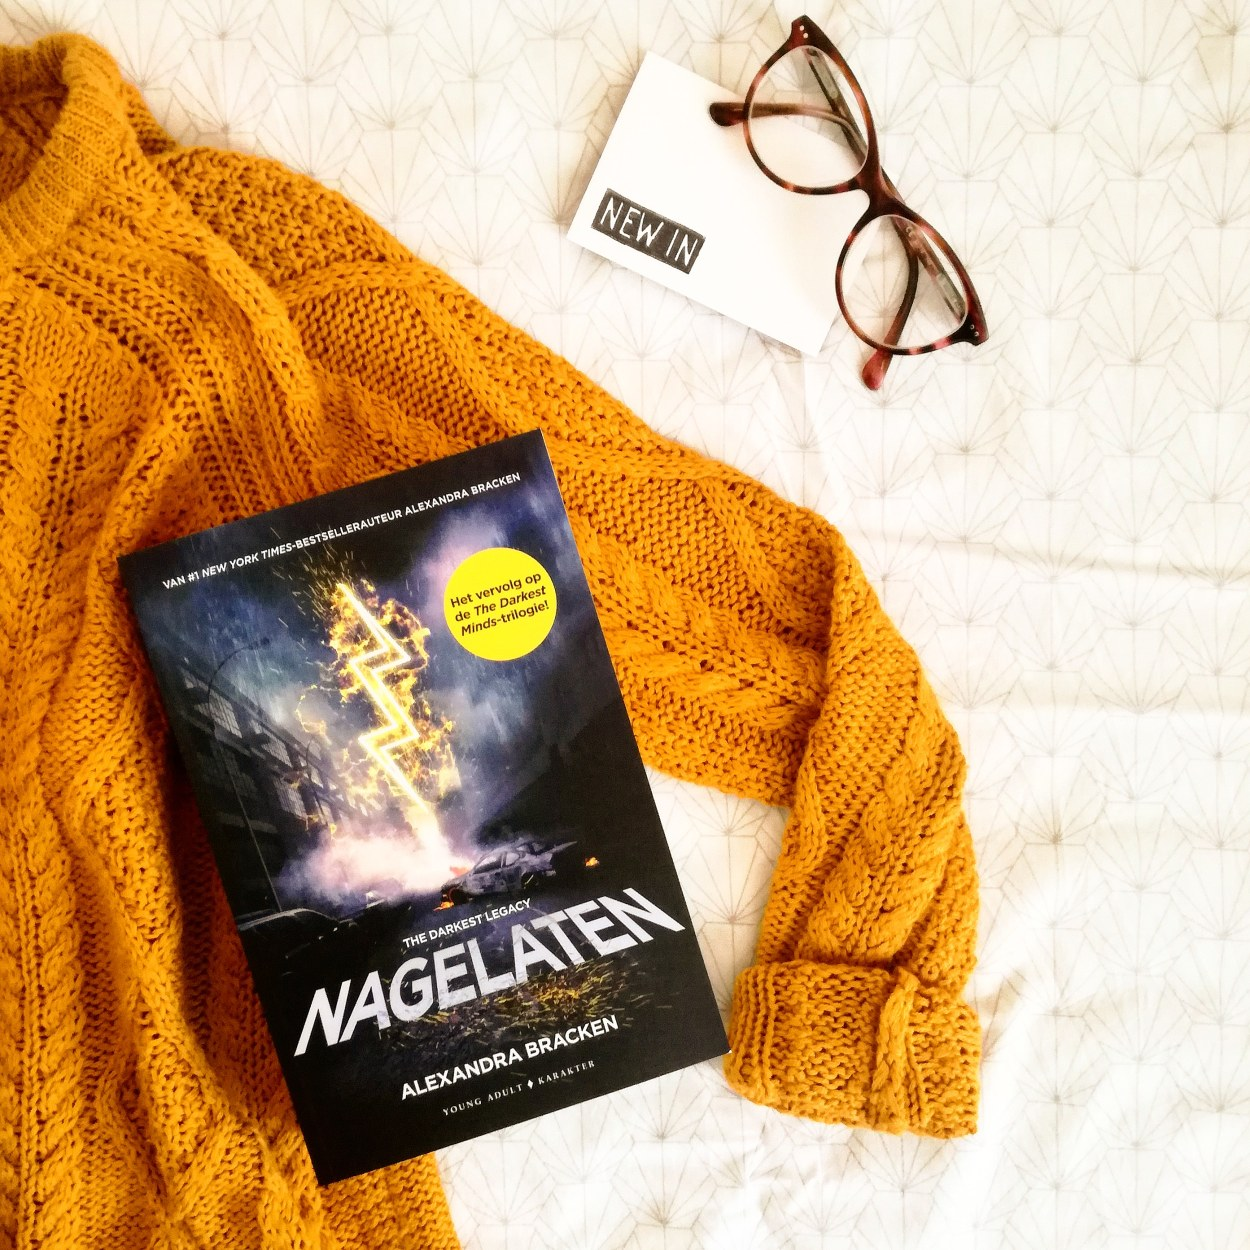 nagelaten the darkest minds Alexandra Bracken